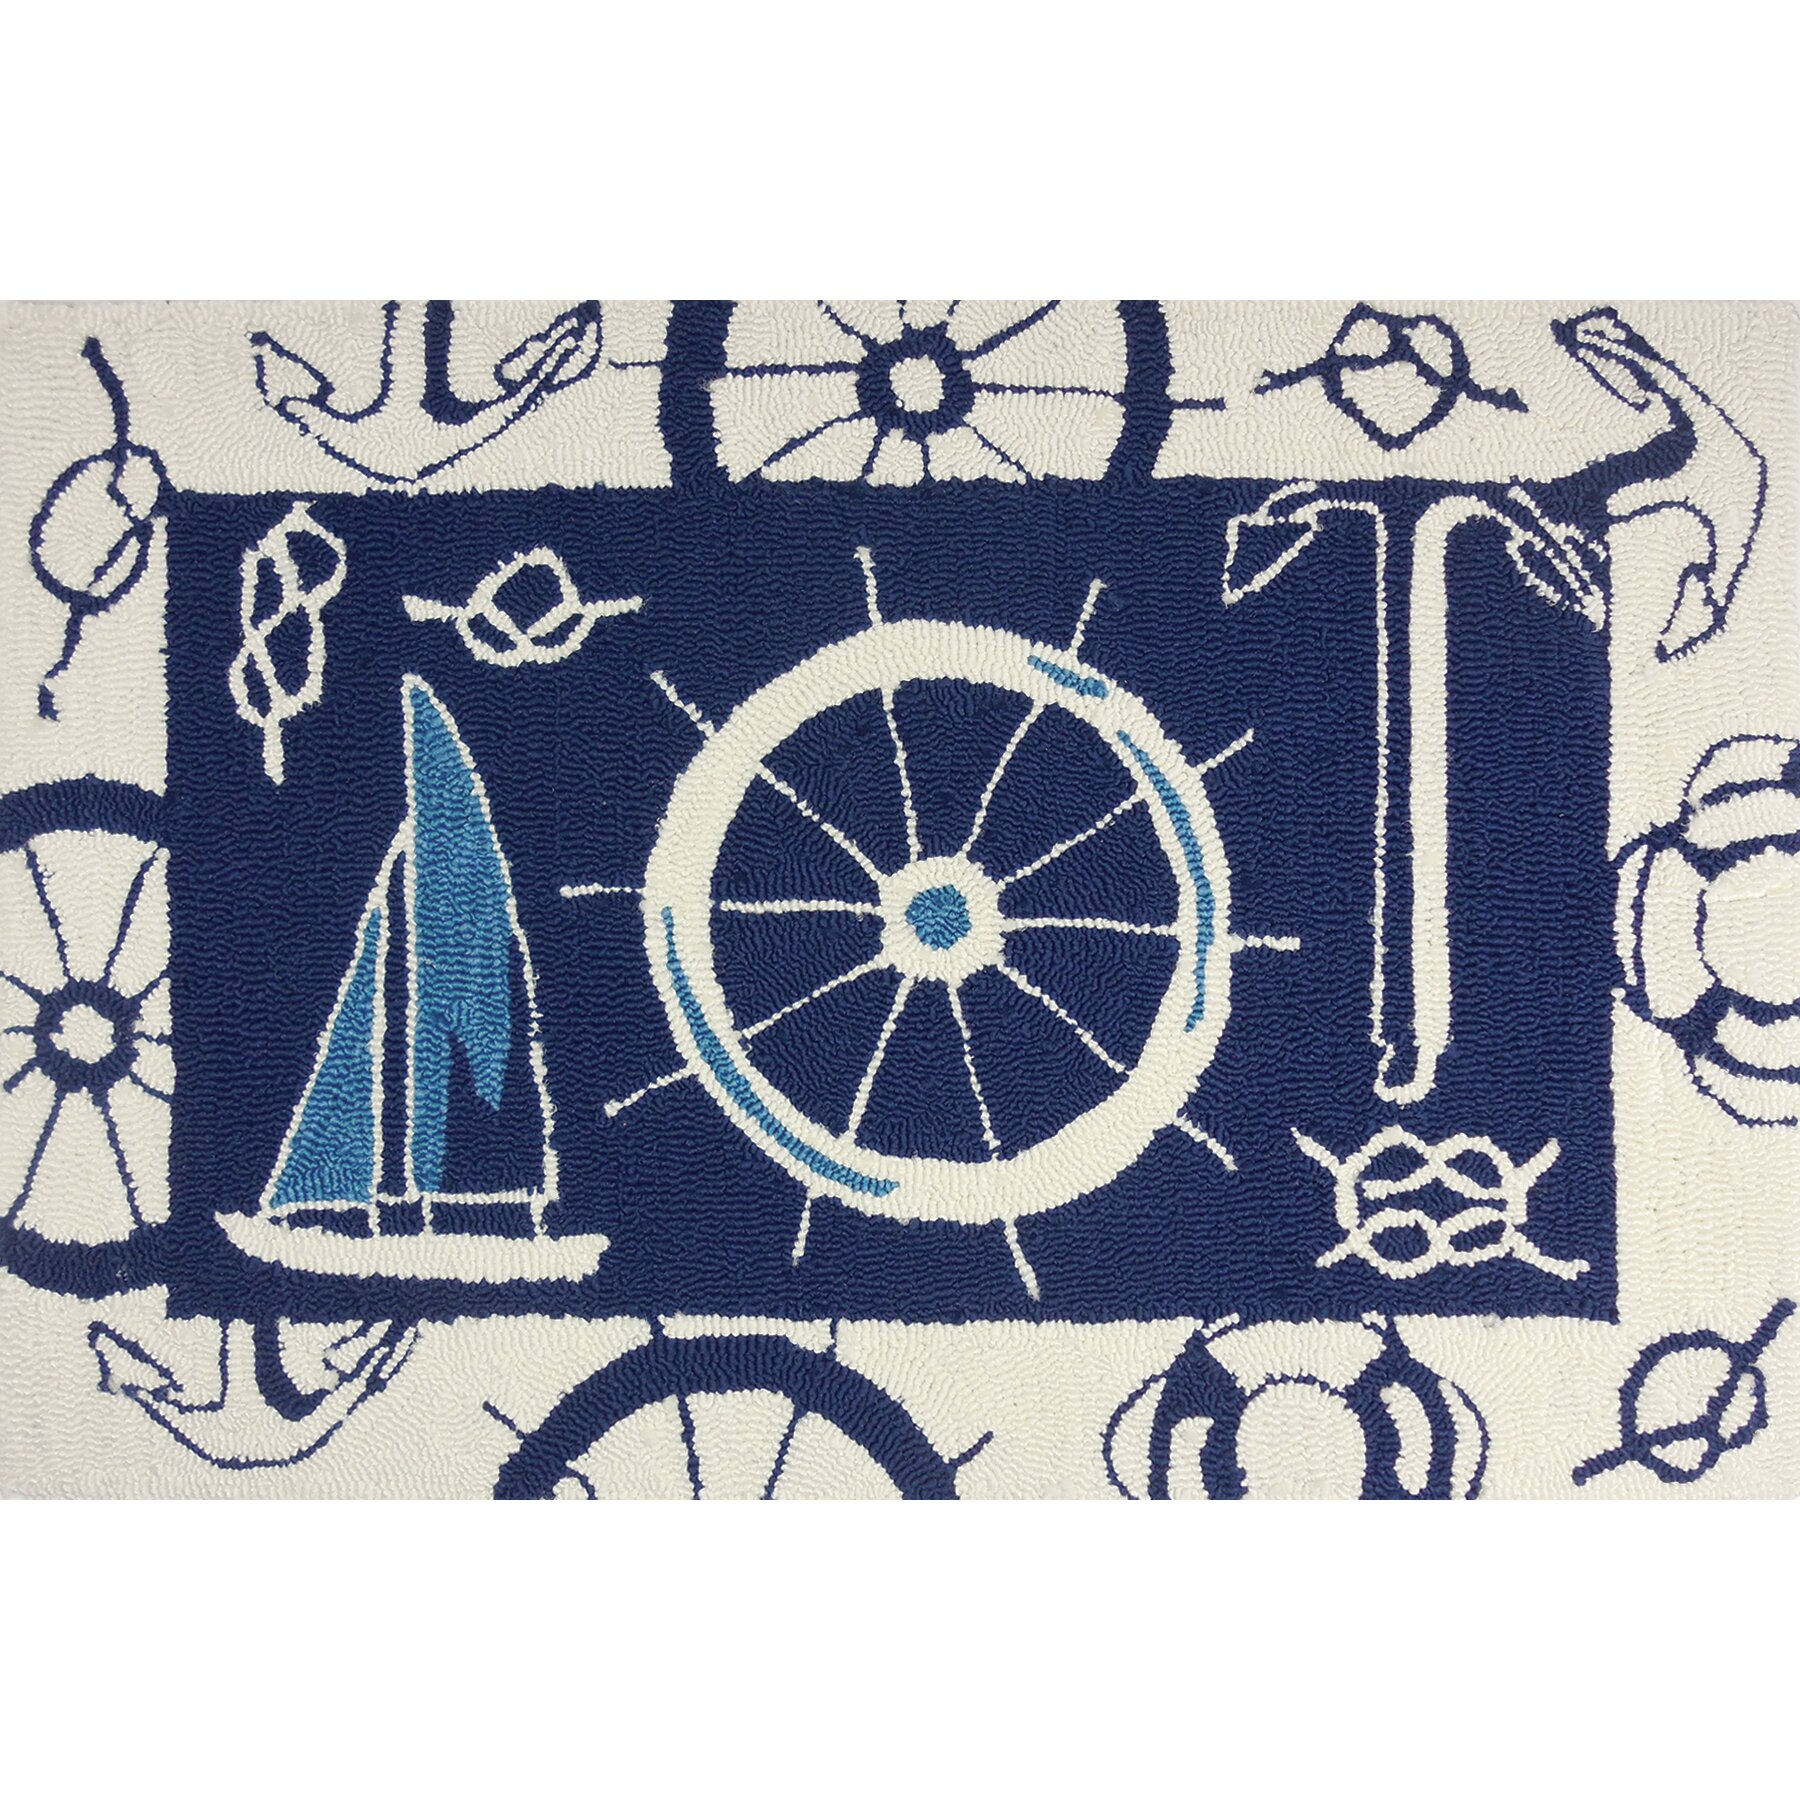 Nautical Blue Beige Indoor Outdoor Area Rug